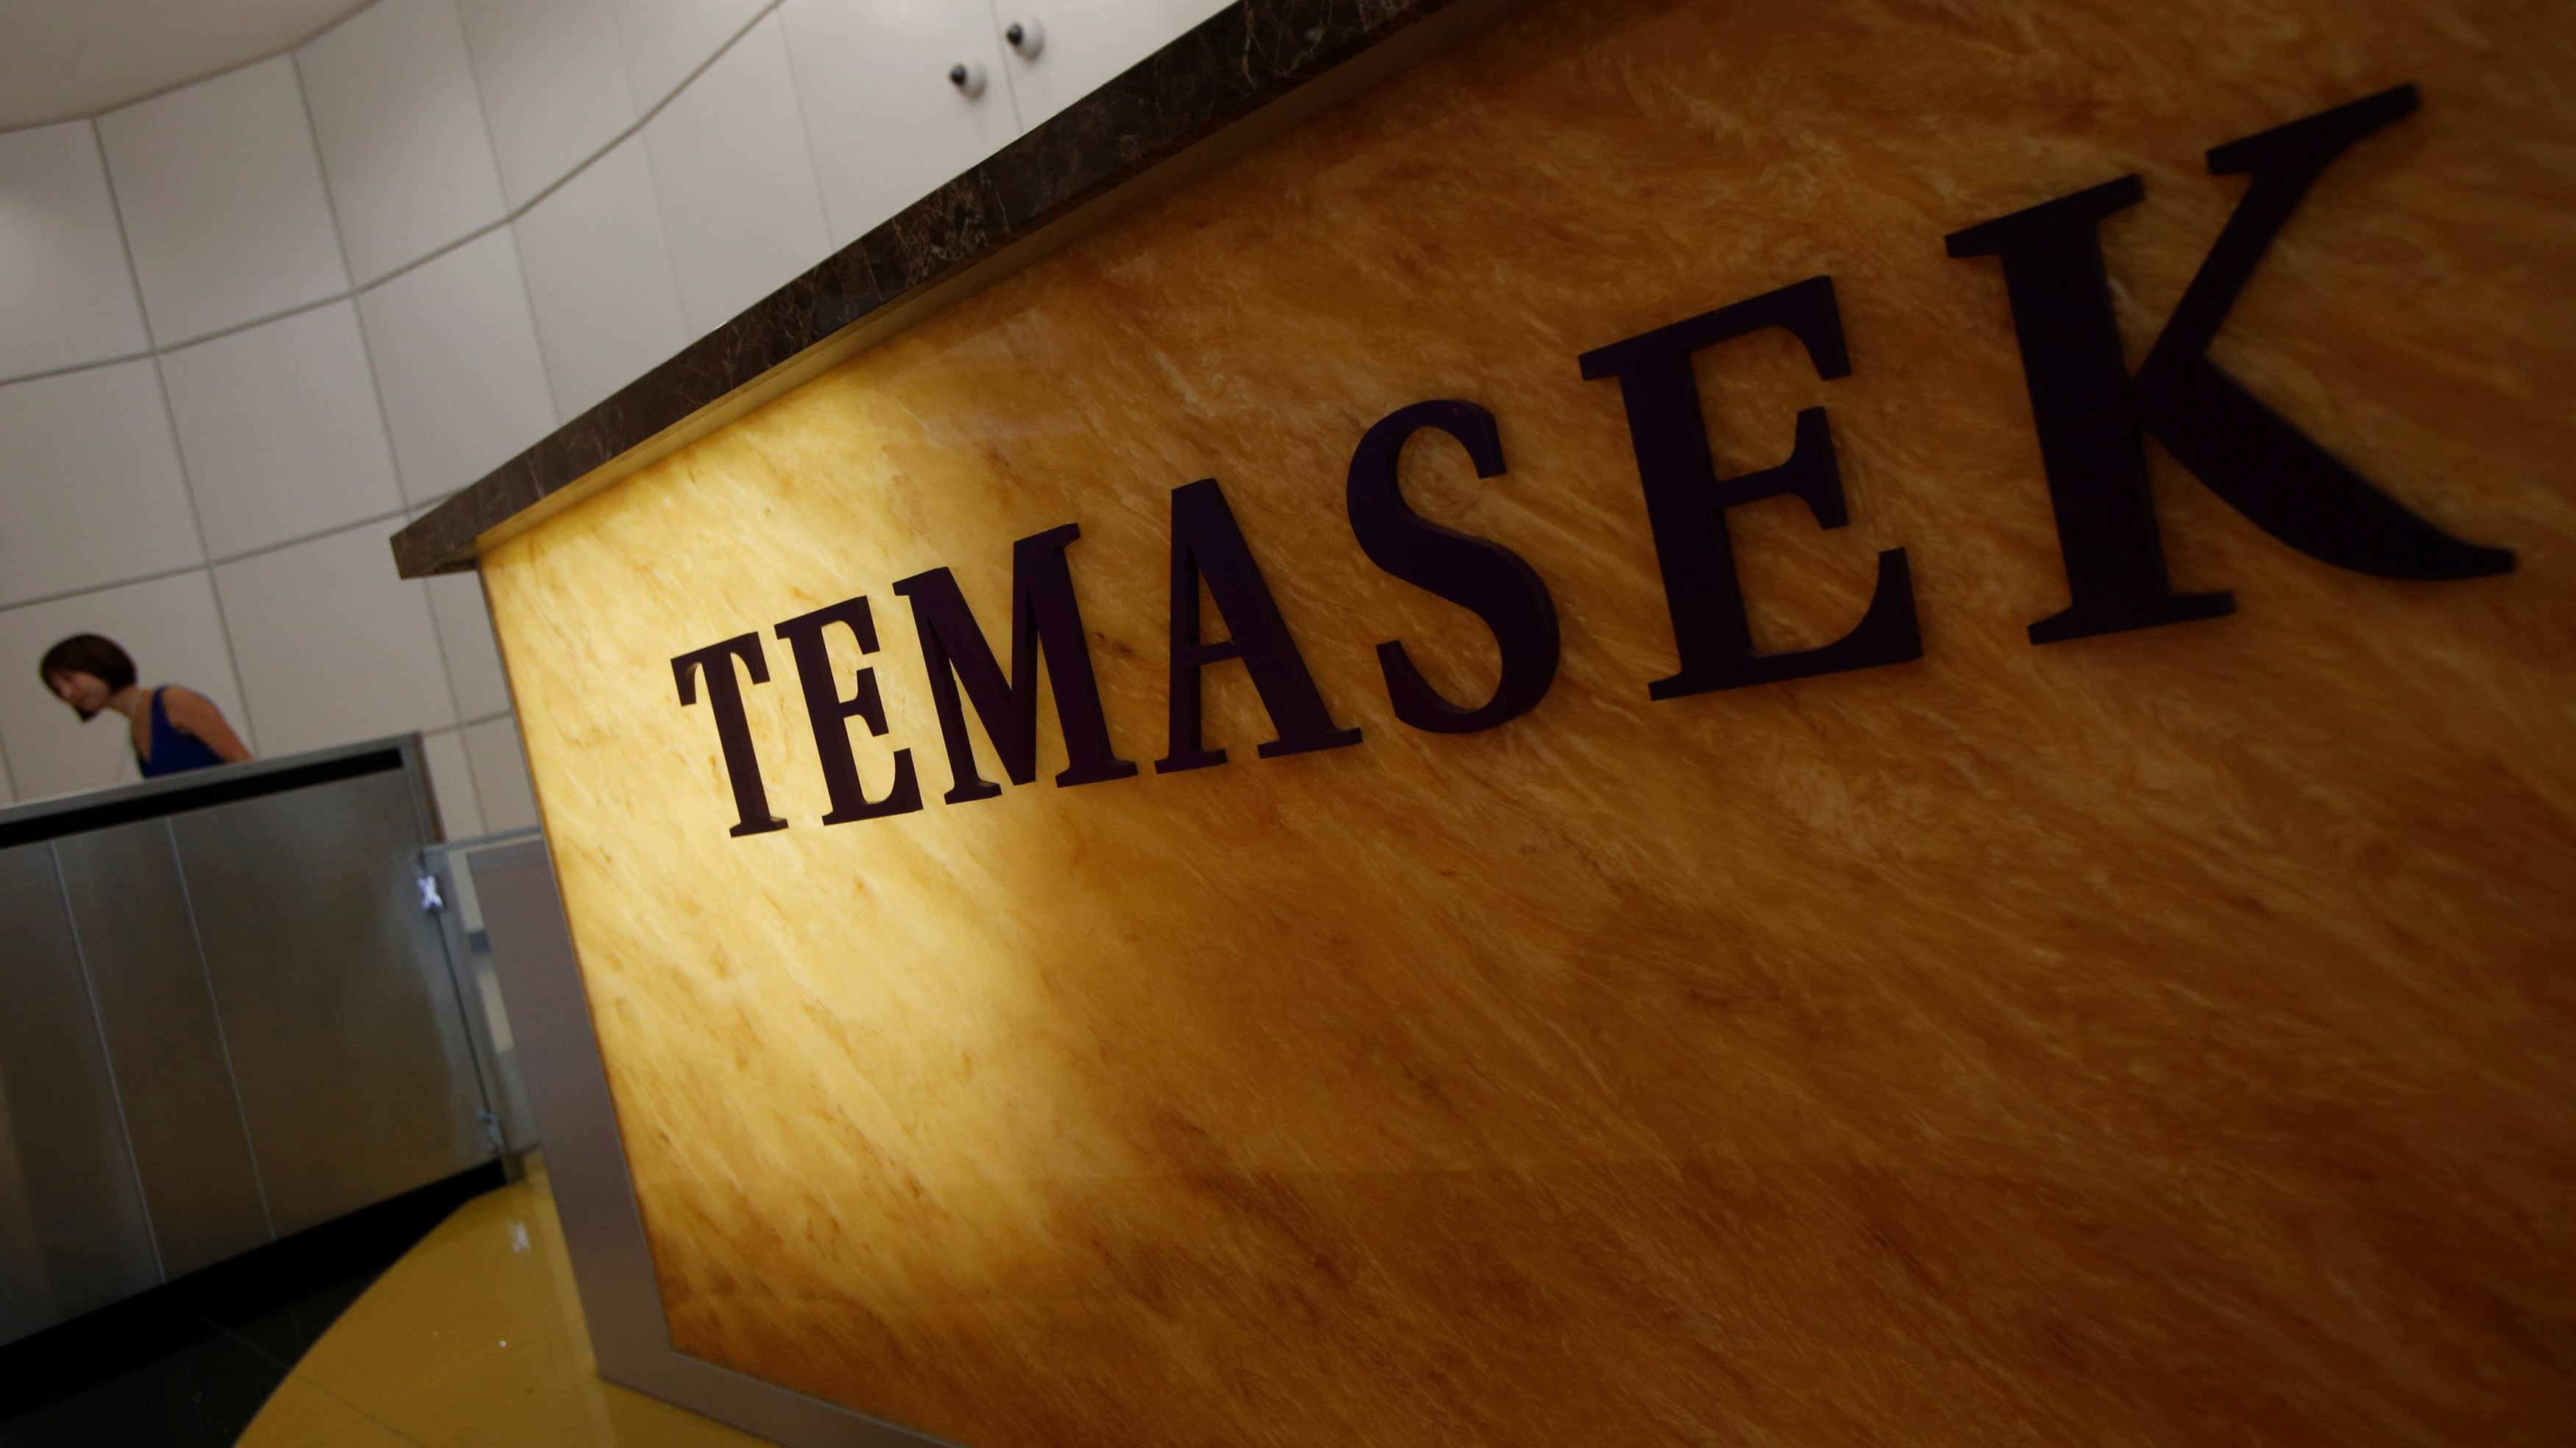 Singapore's Temasek expands investment in biotech companies